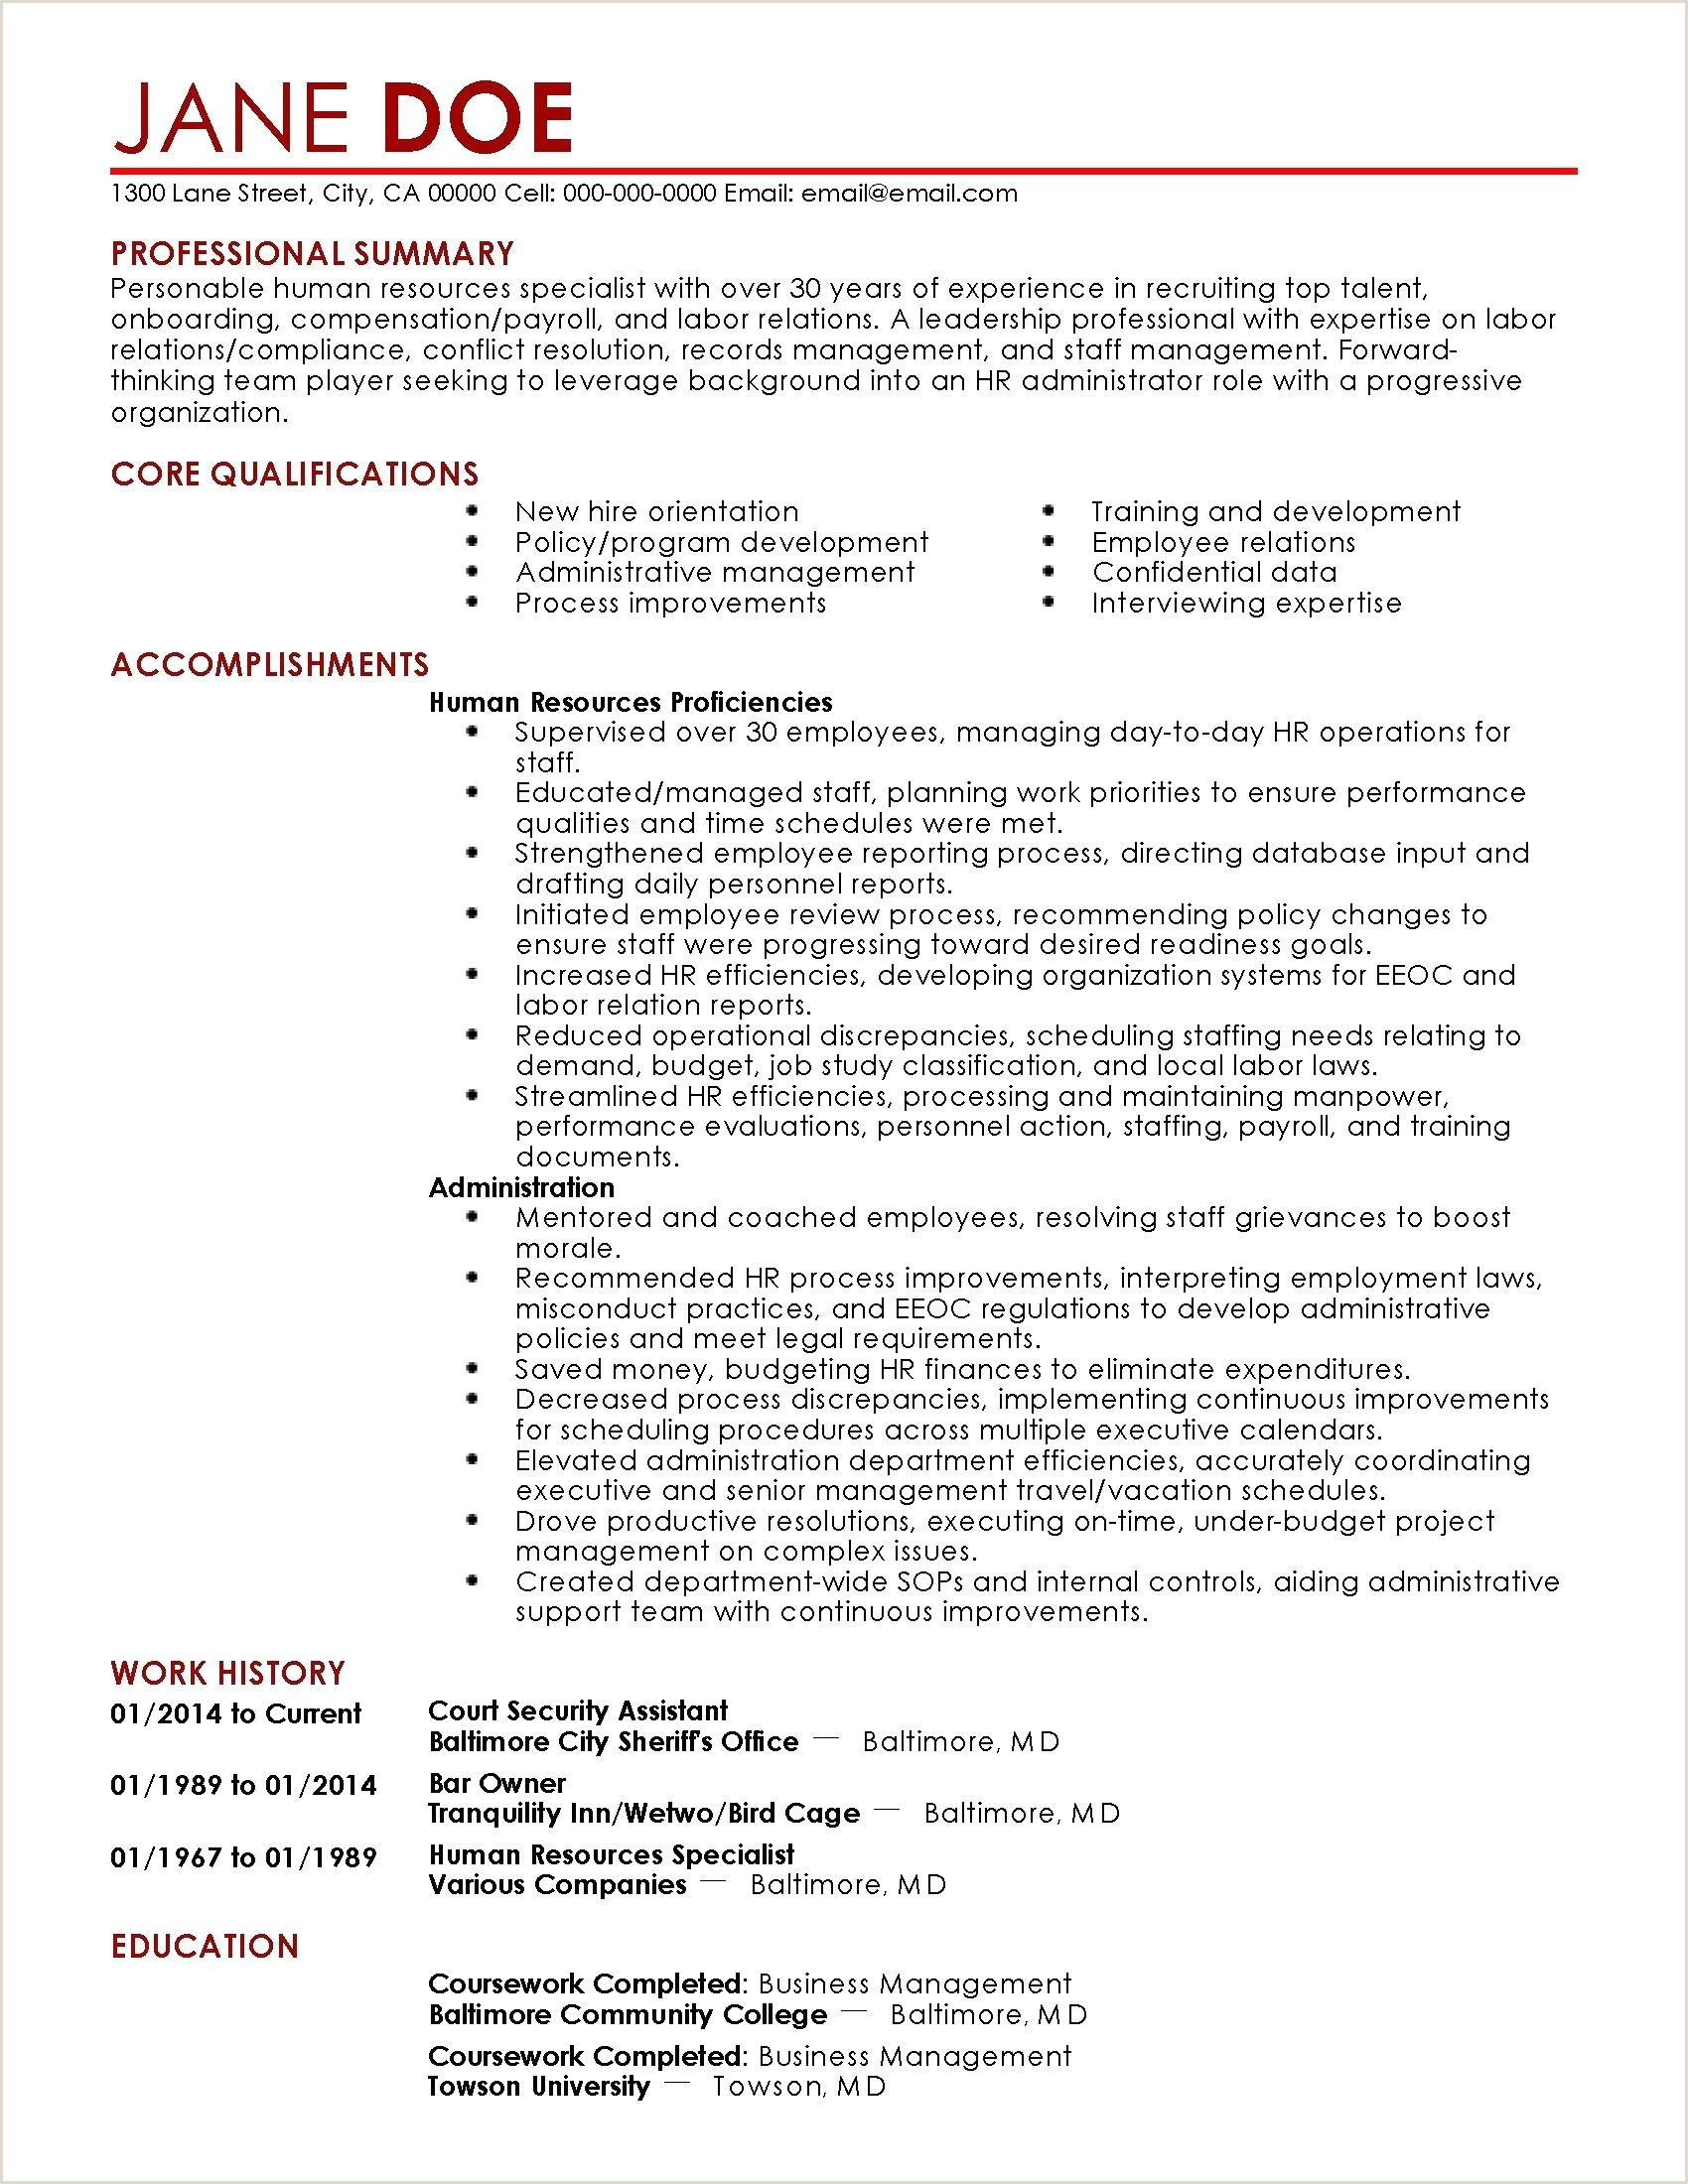 Best Law fice assistant Resume